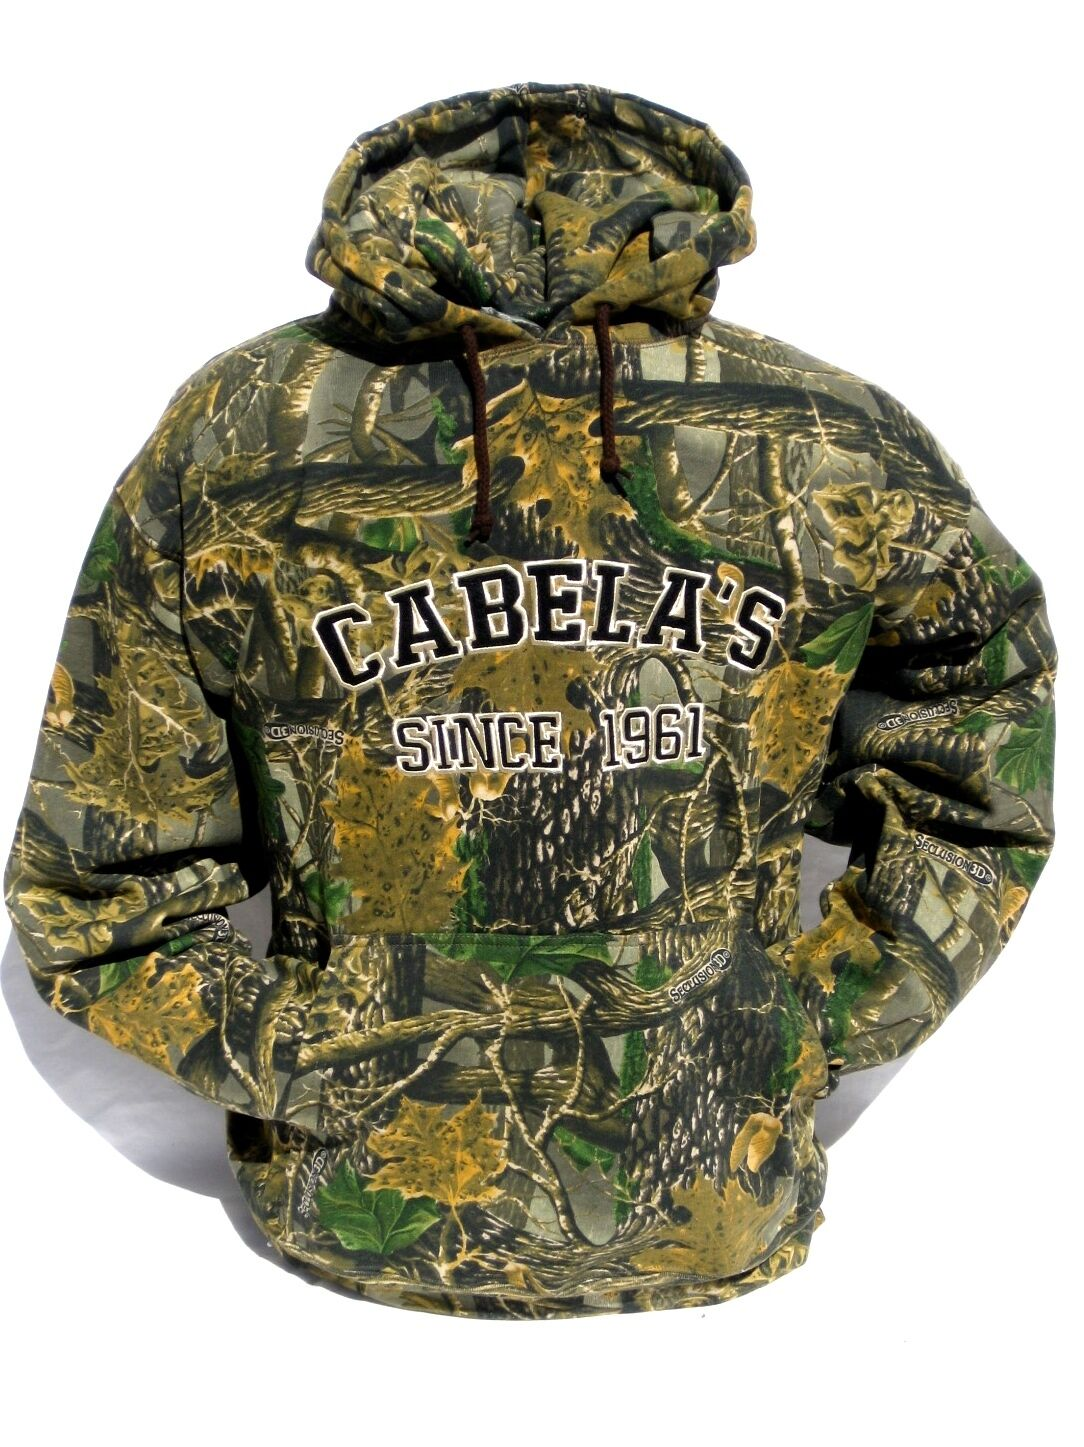 Cabela's Seclusion 3D Athletic  Hunting Hoodie Men's Heavyweight Sweatshirt 2XL  guaranteed